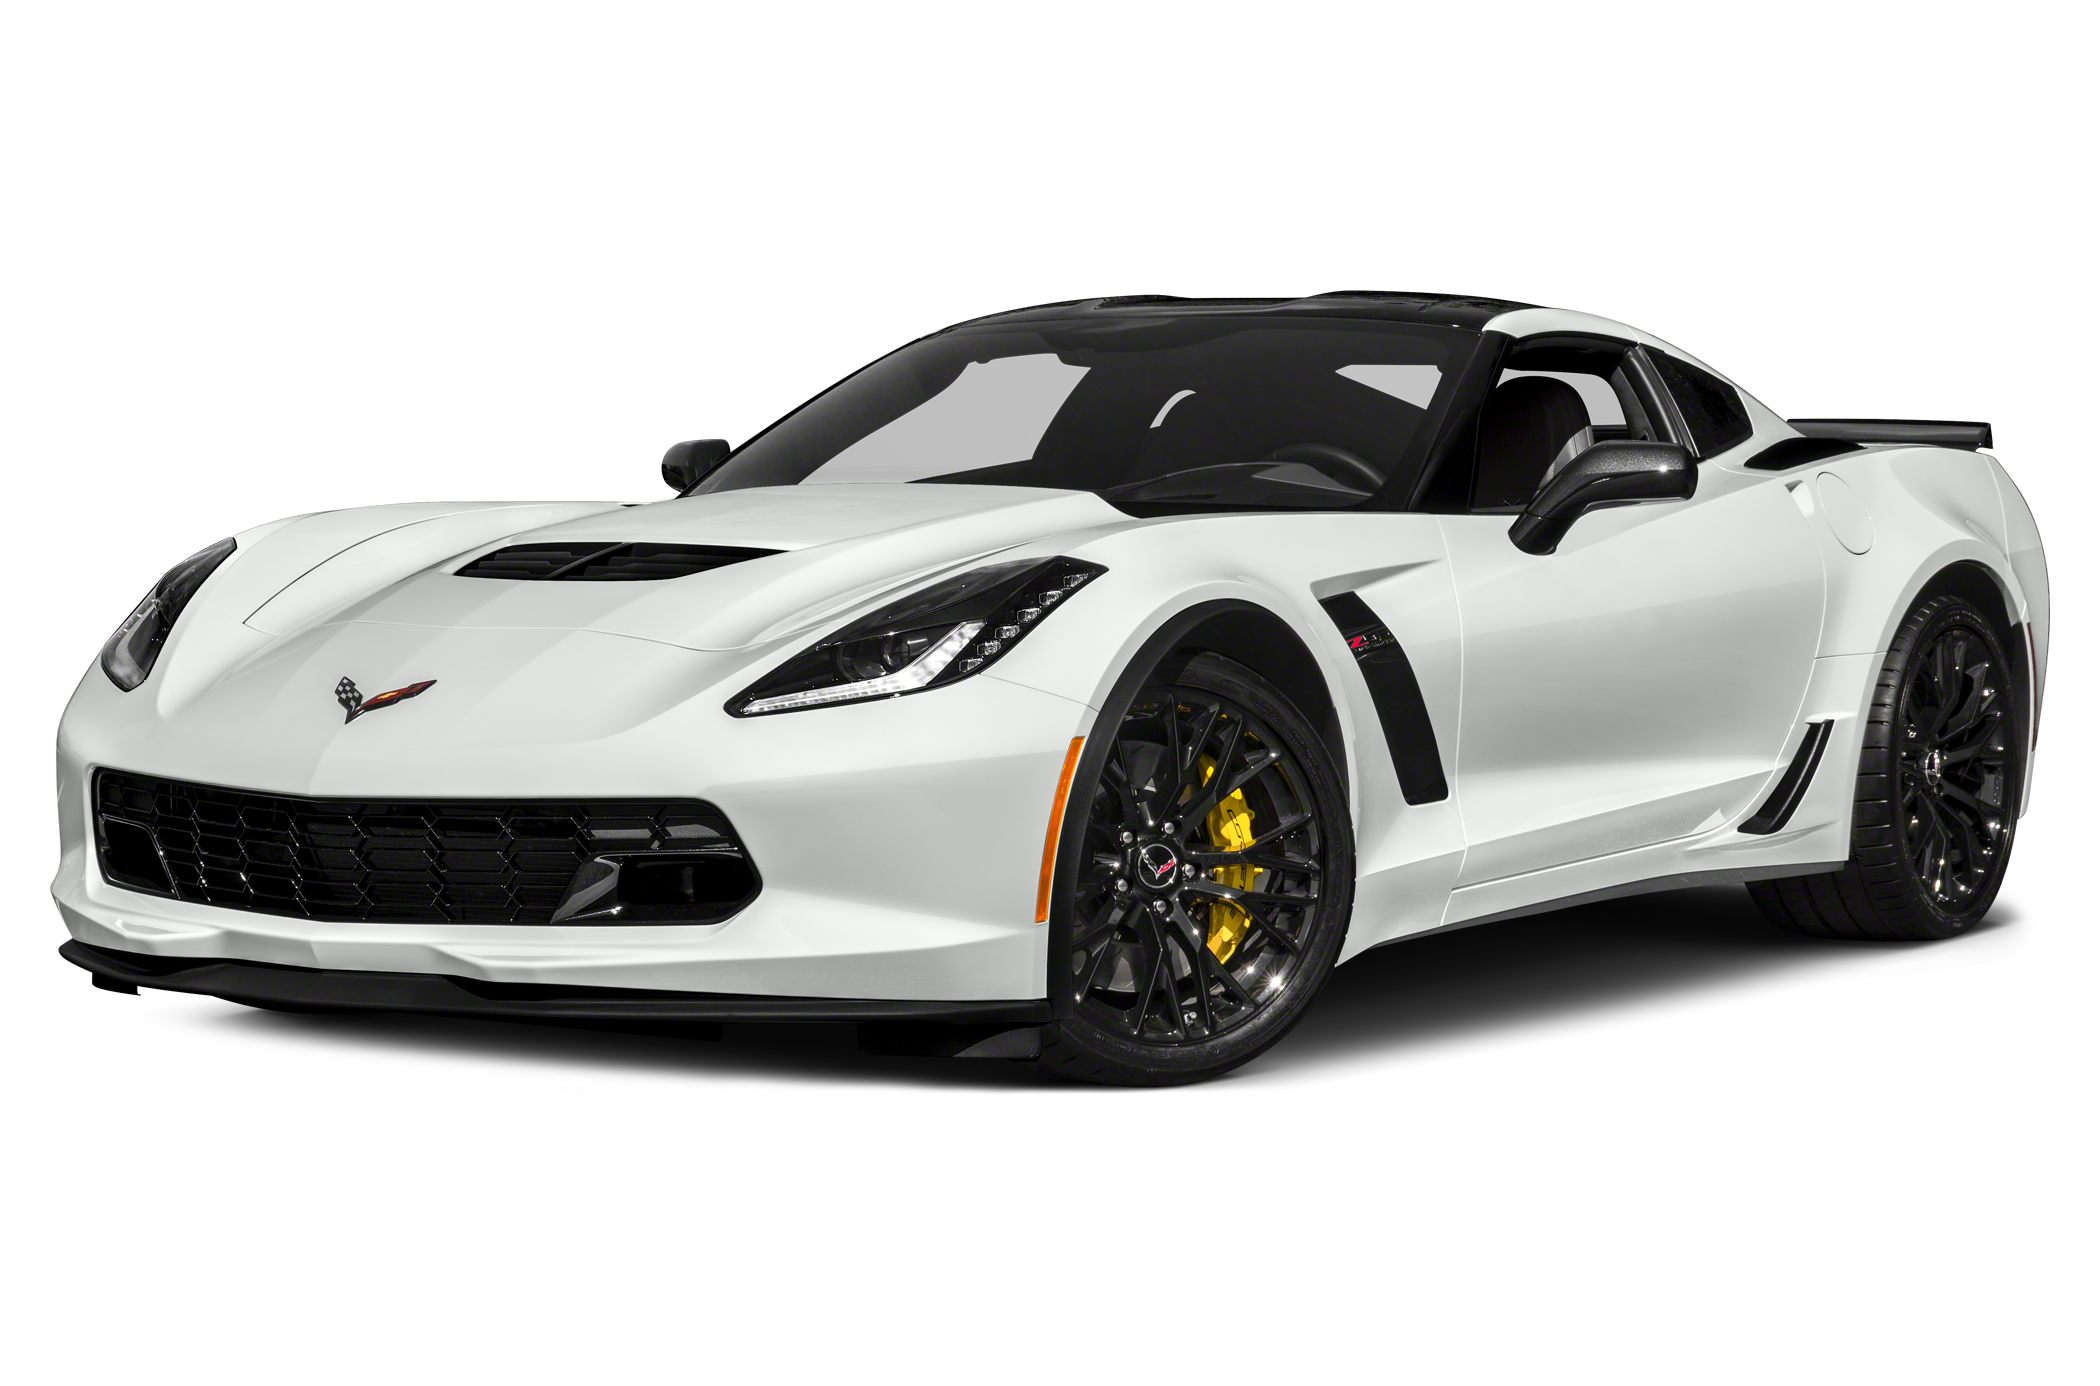 2018 Chevrolet Corvette Z06 2dr Coupe Specs and Prices